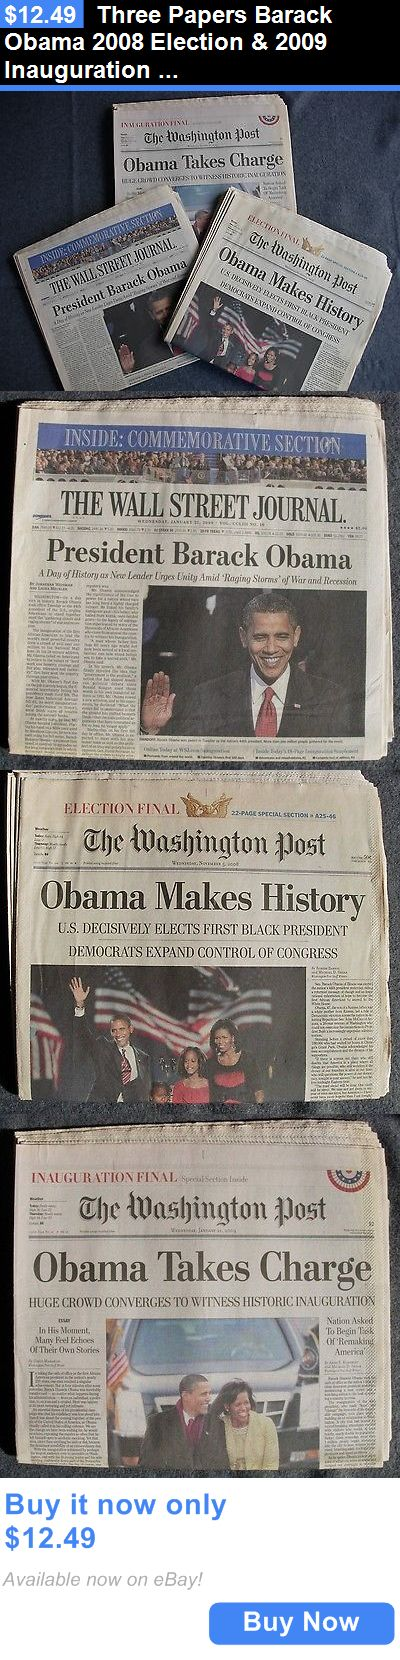 Barack Obama: Three Papers Barack Obama 2008 Election And 2009 Inauguration Wsj Washington Post BUY IT NOW ONLY: $12.49